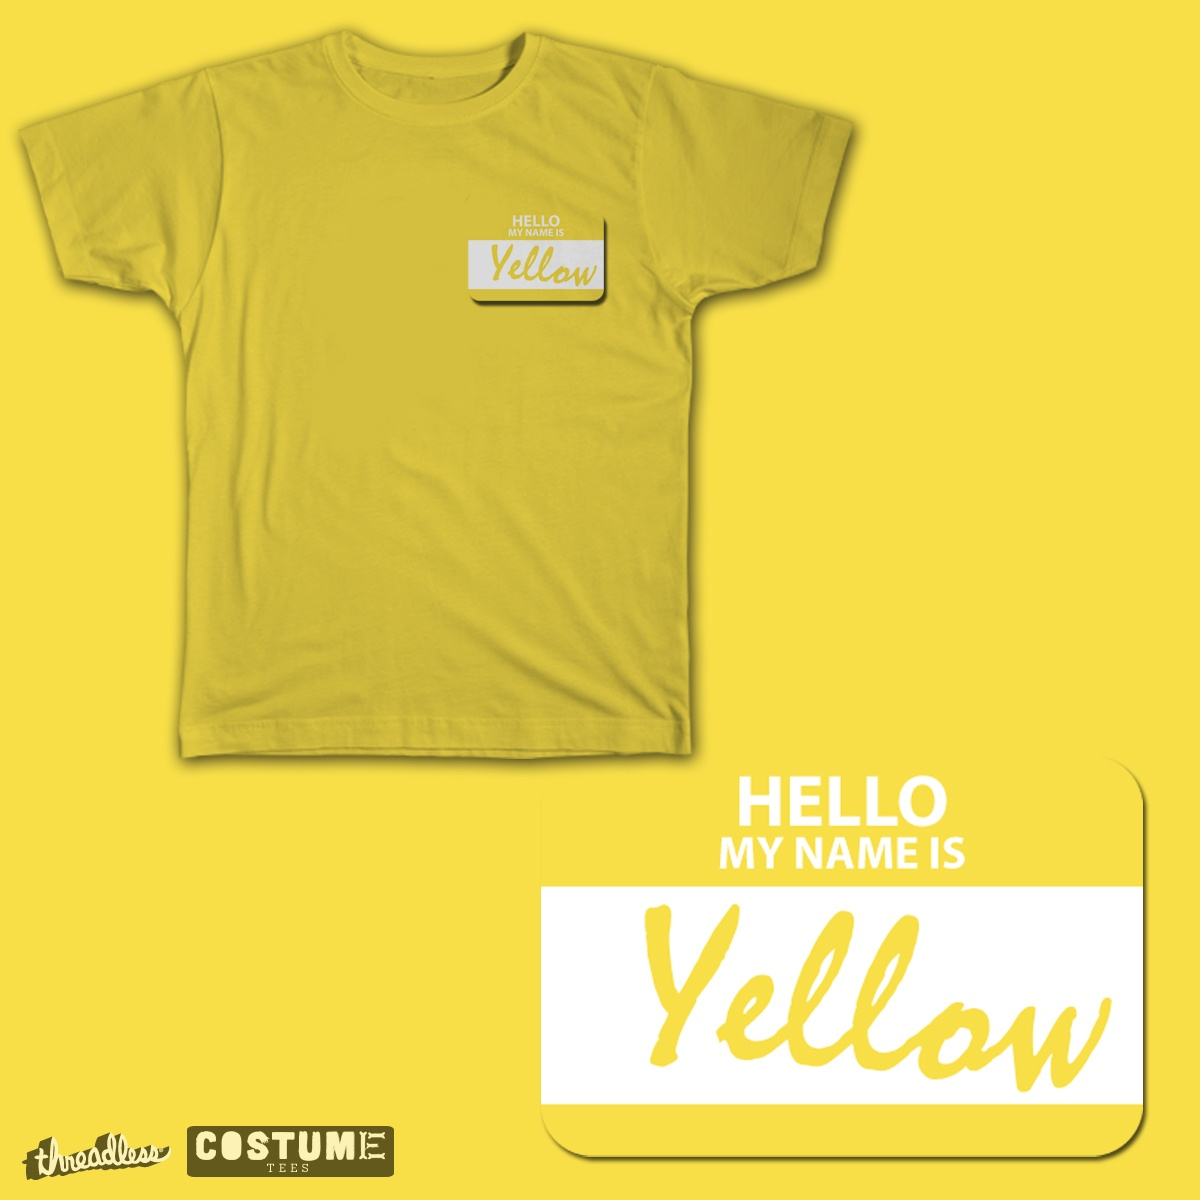 Yellow, a cool t-shirt design